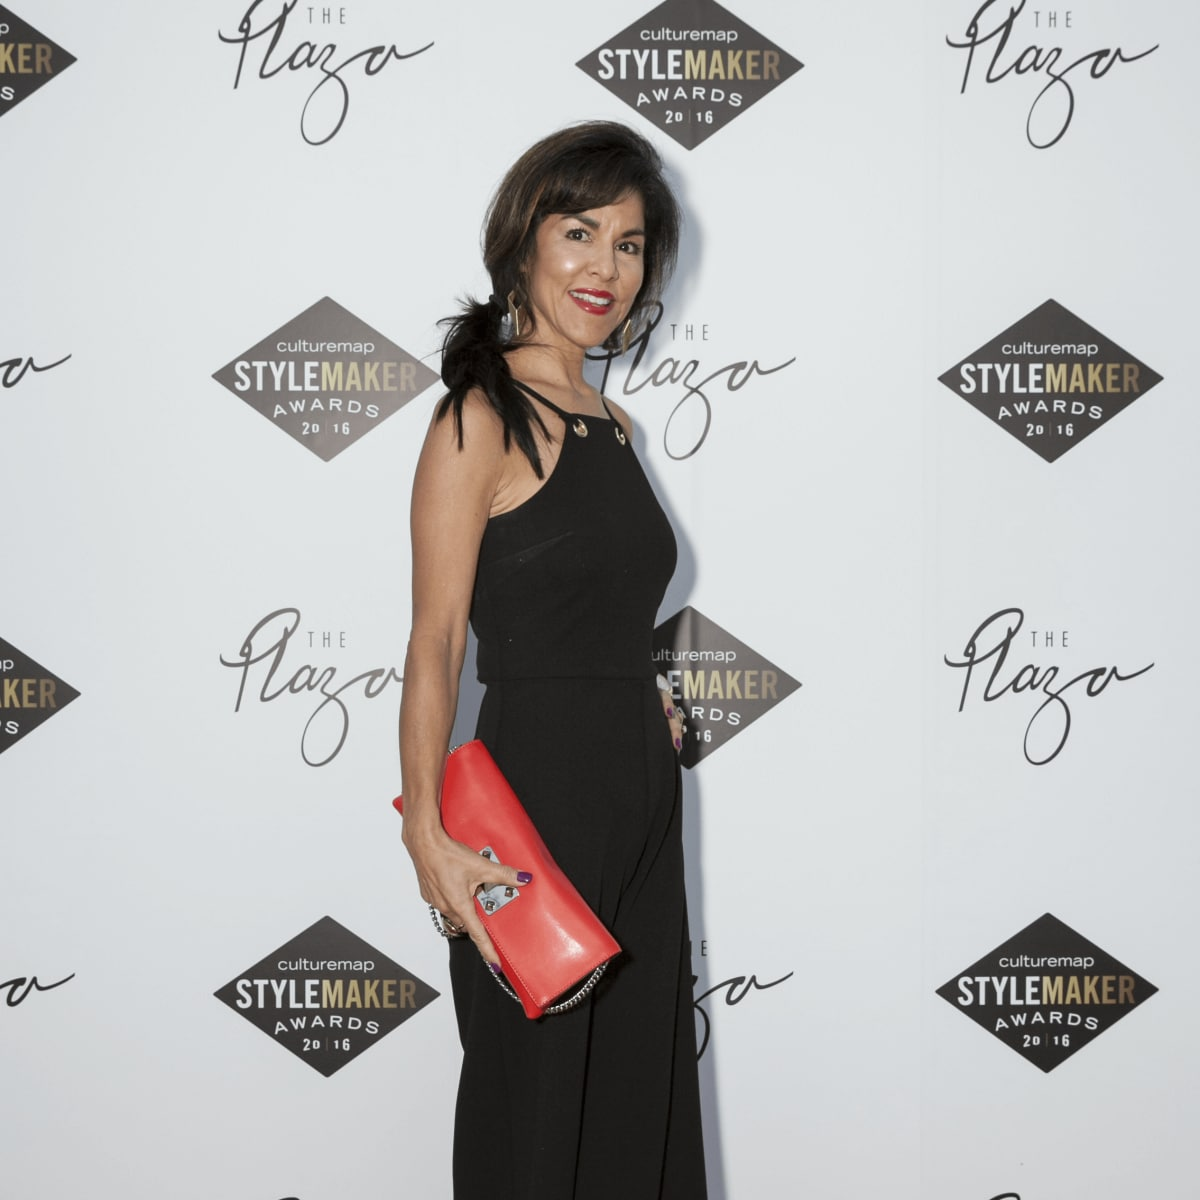 Cici Couchot at 2016 Dallas Stylemaker Awards